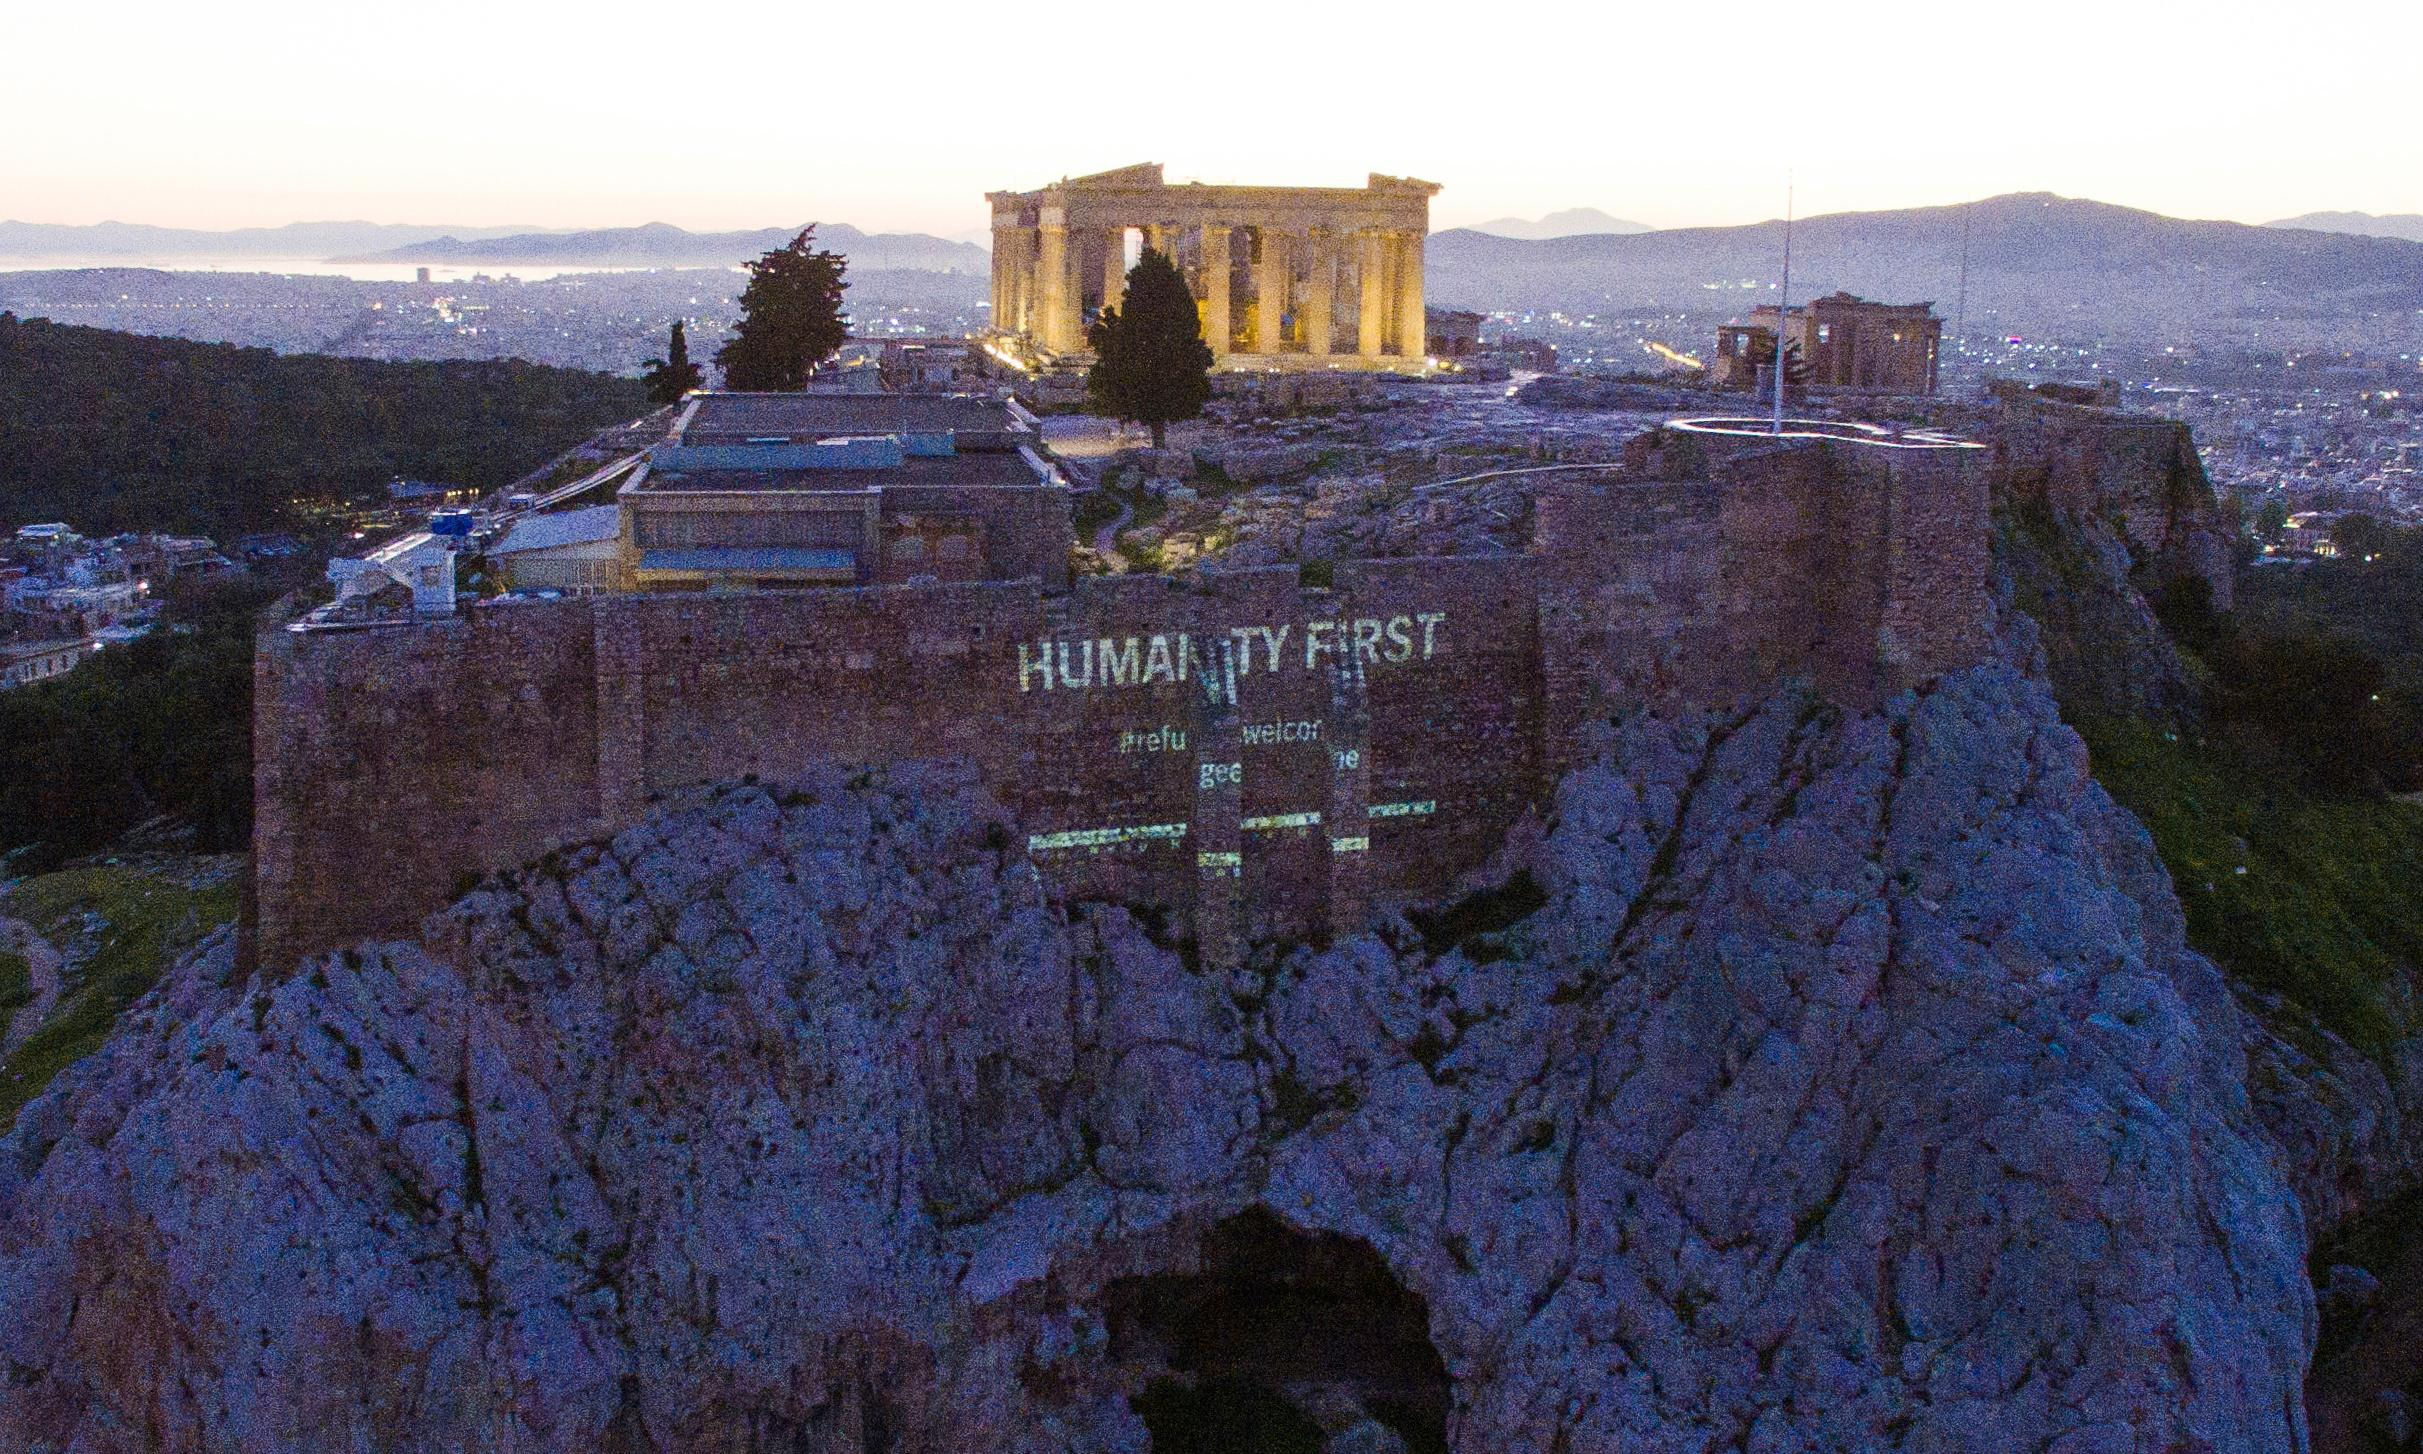 Activists project 'refugees welcome' on Acropolis to show crisis not over